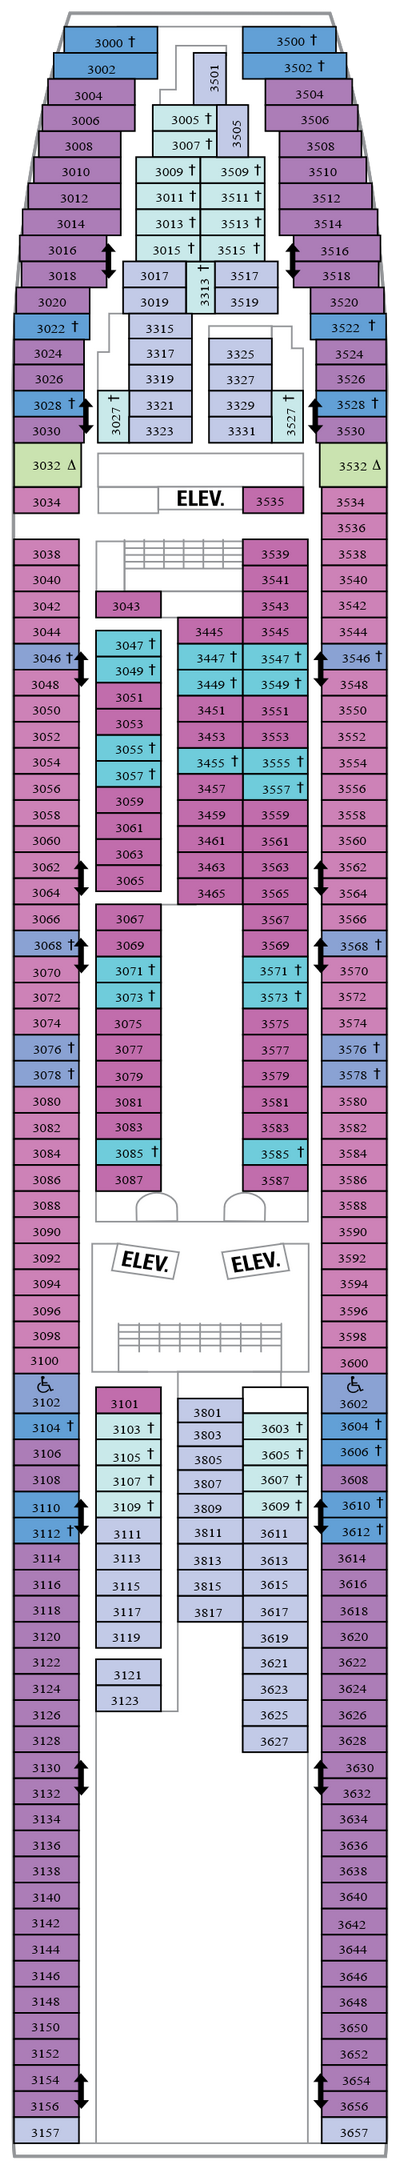 Vision Of The Seas Deck 3 layout